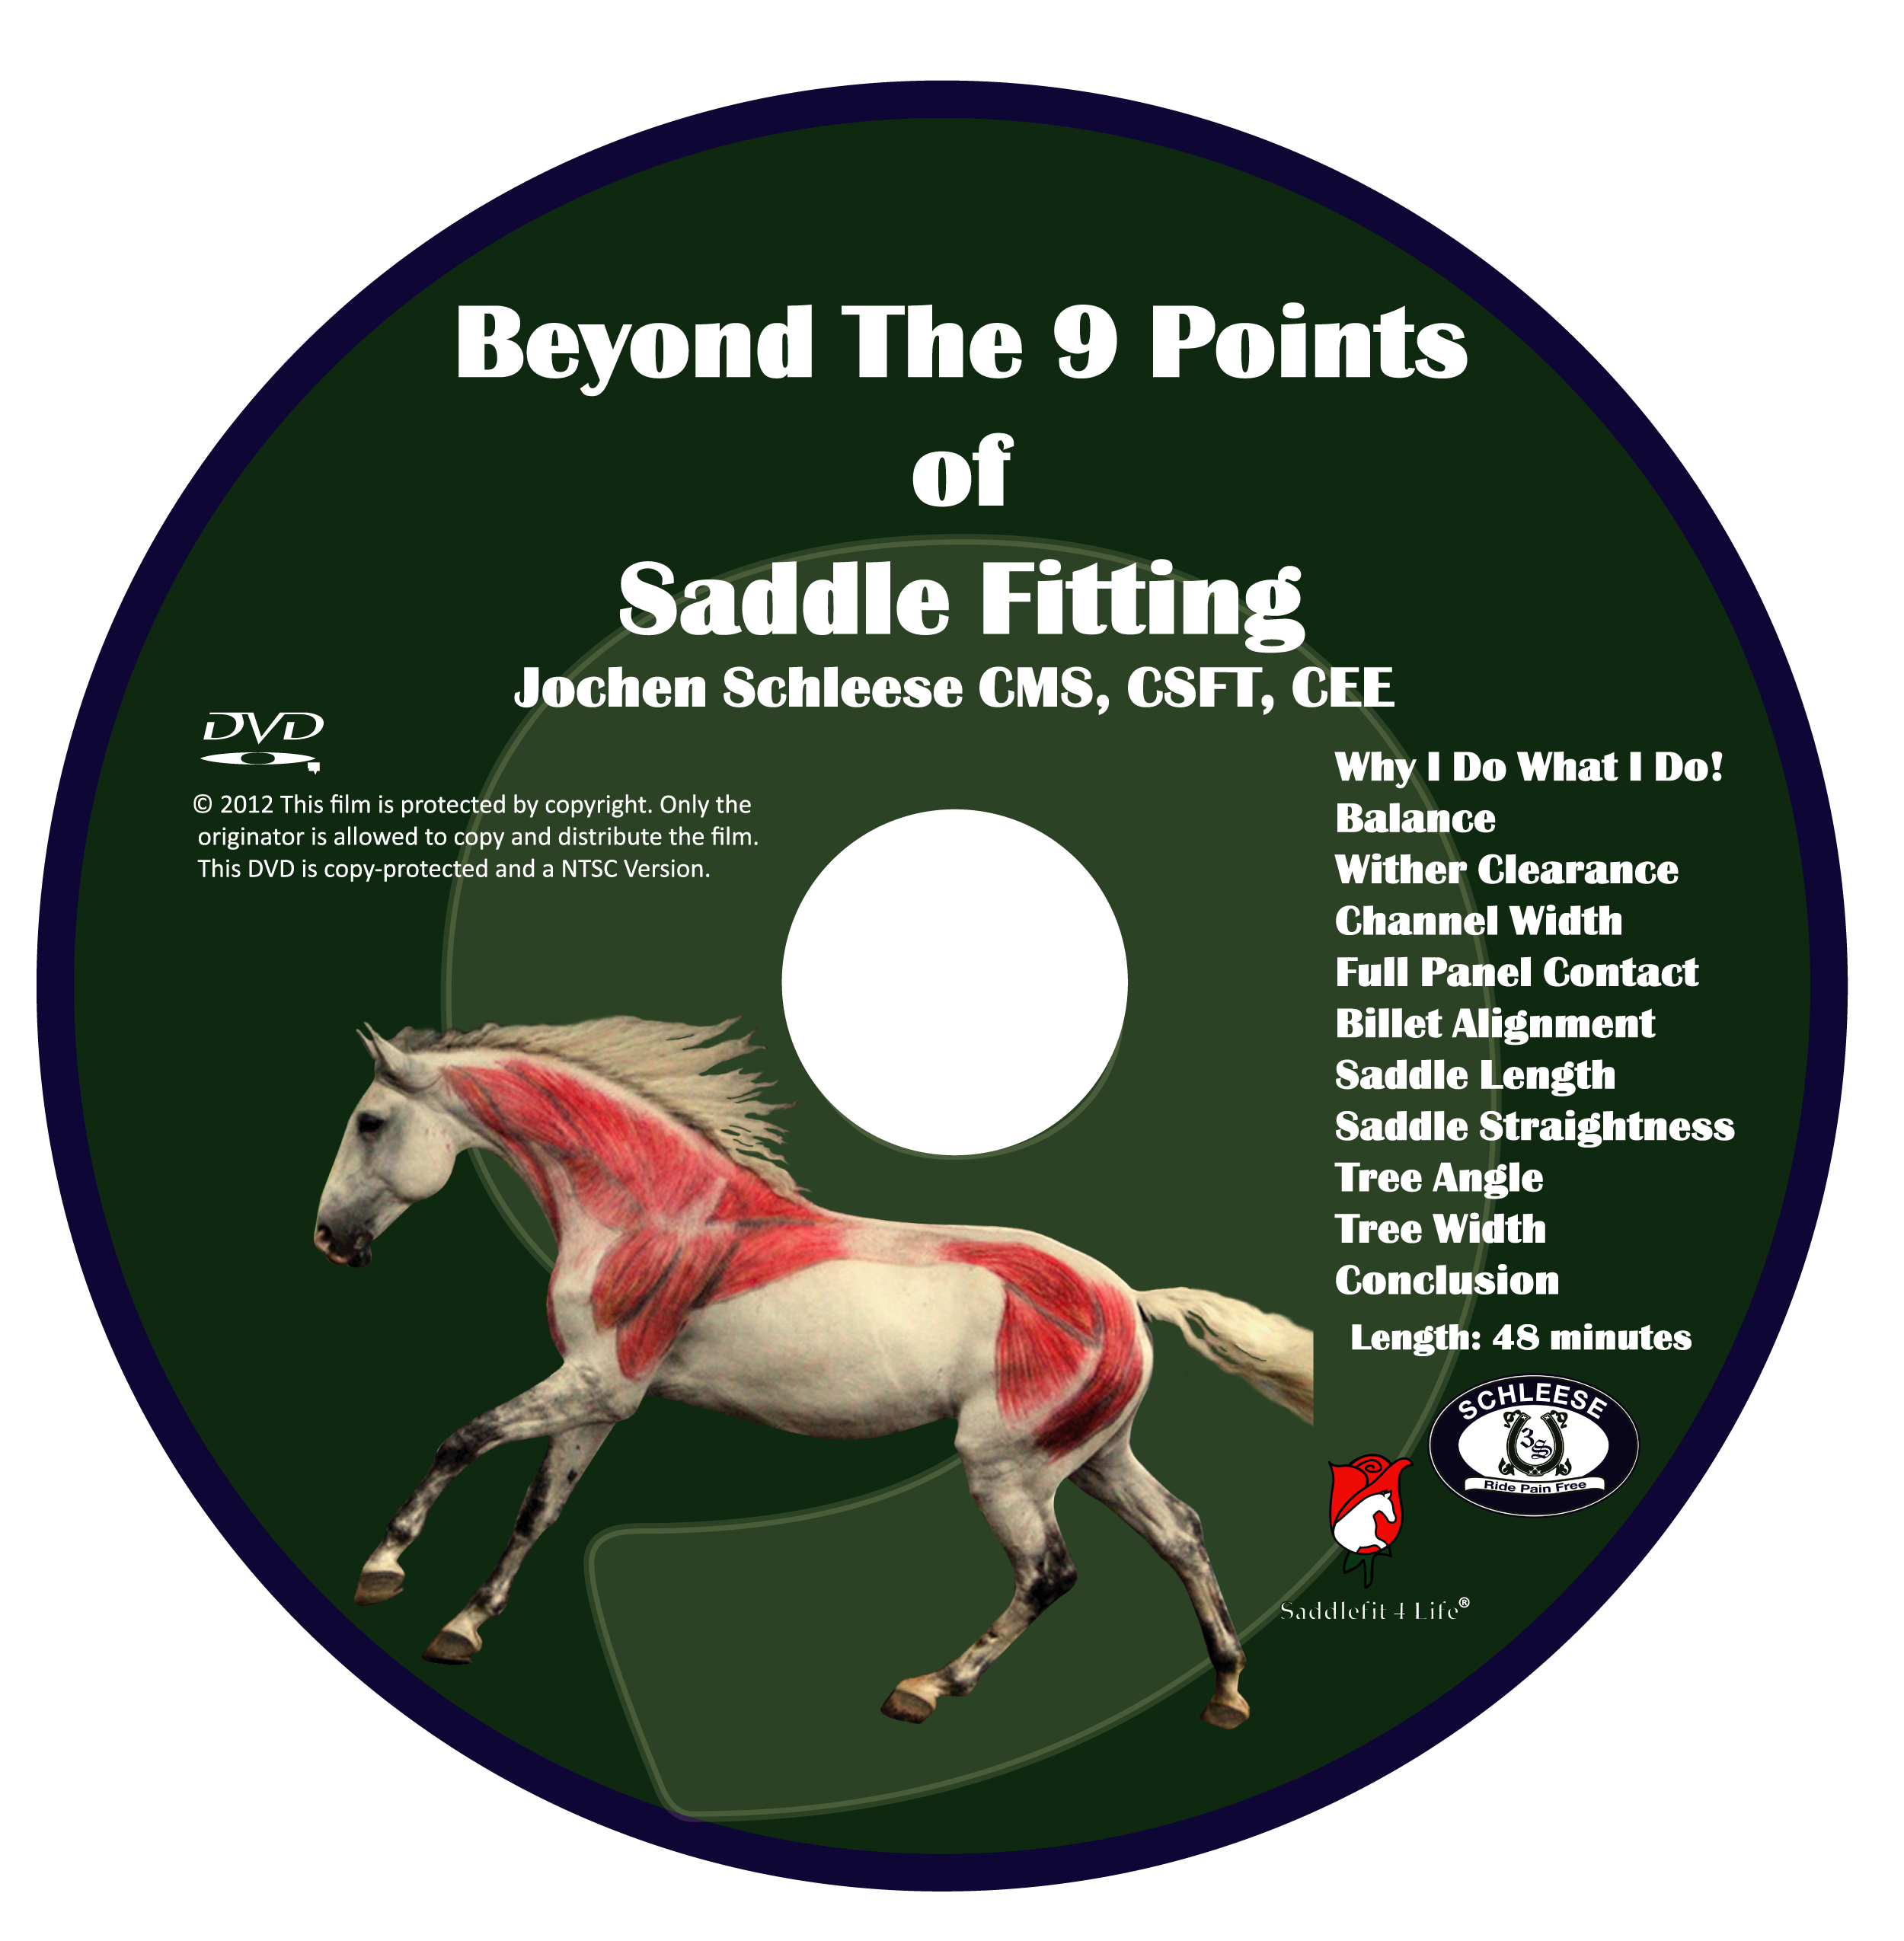 Beyond the 9 Points of Saddle Fitting Video Download